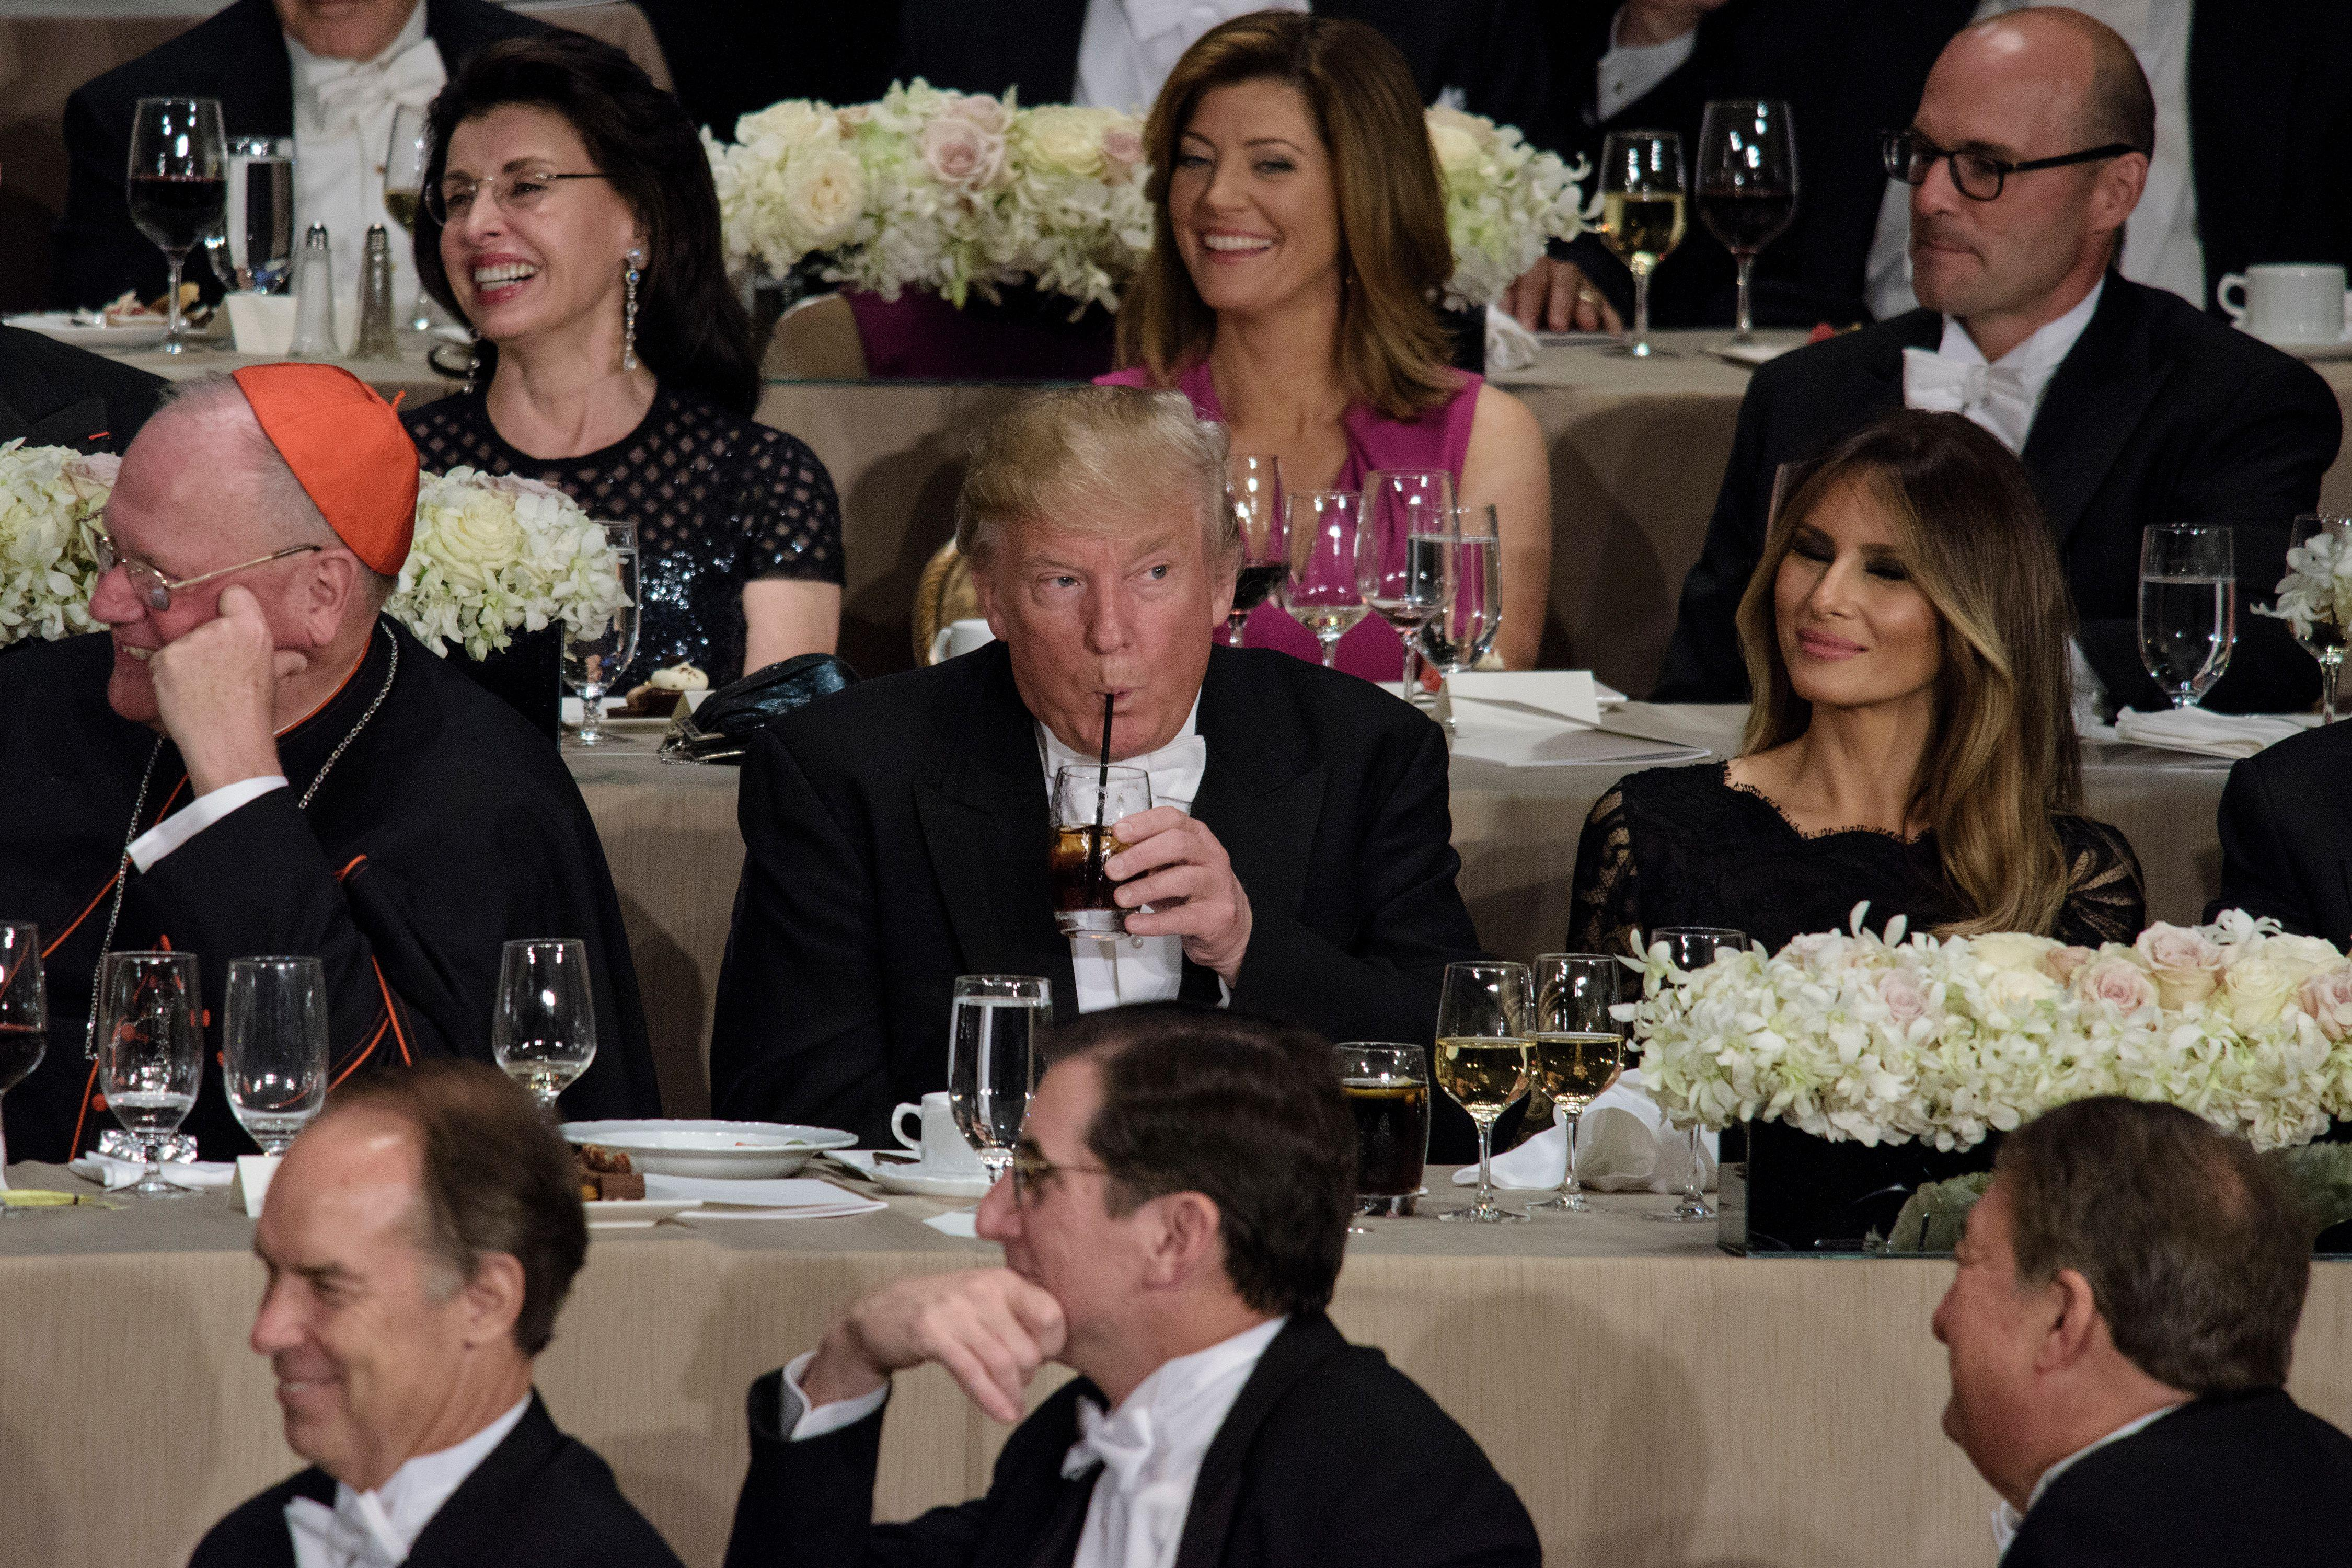 From left Cardinal Timothy Dolan, Archbishop of New York, Republican presidential nominee Donald Trump, Melania Trump and others listen as Democratic presidential nominee Hillary Clinton speaks during the Alfred E. Smith Memorial Foundation Dinner at Waldorf Astoria October 20, 2016 in New York, New York. / AFP / Brendan Smialowski        (Photo credit should read BRENDAN SMIALOWSKI/AFP/Getty Images)